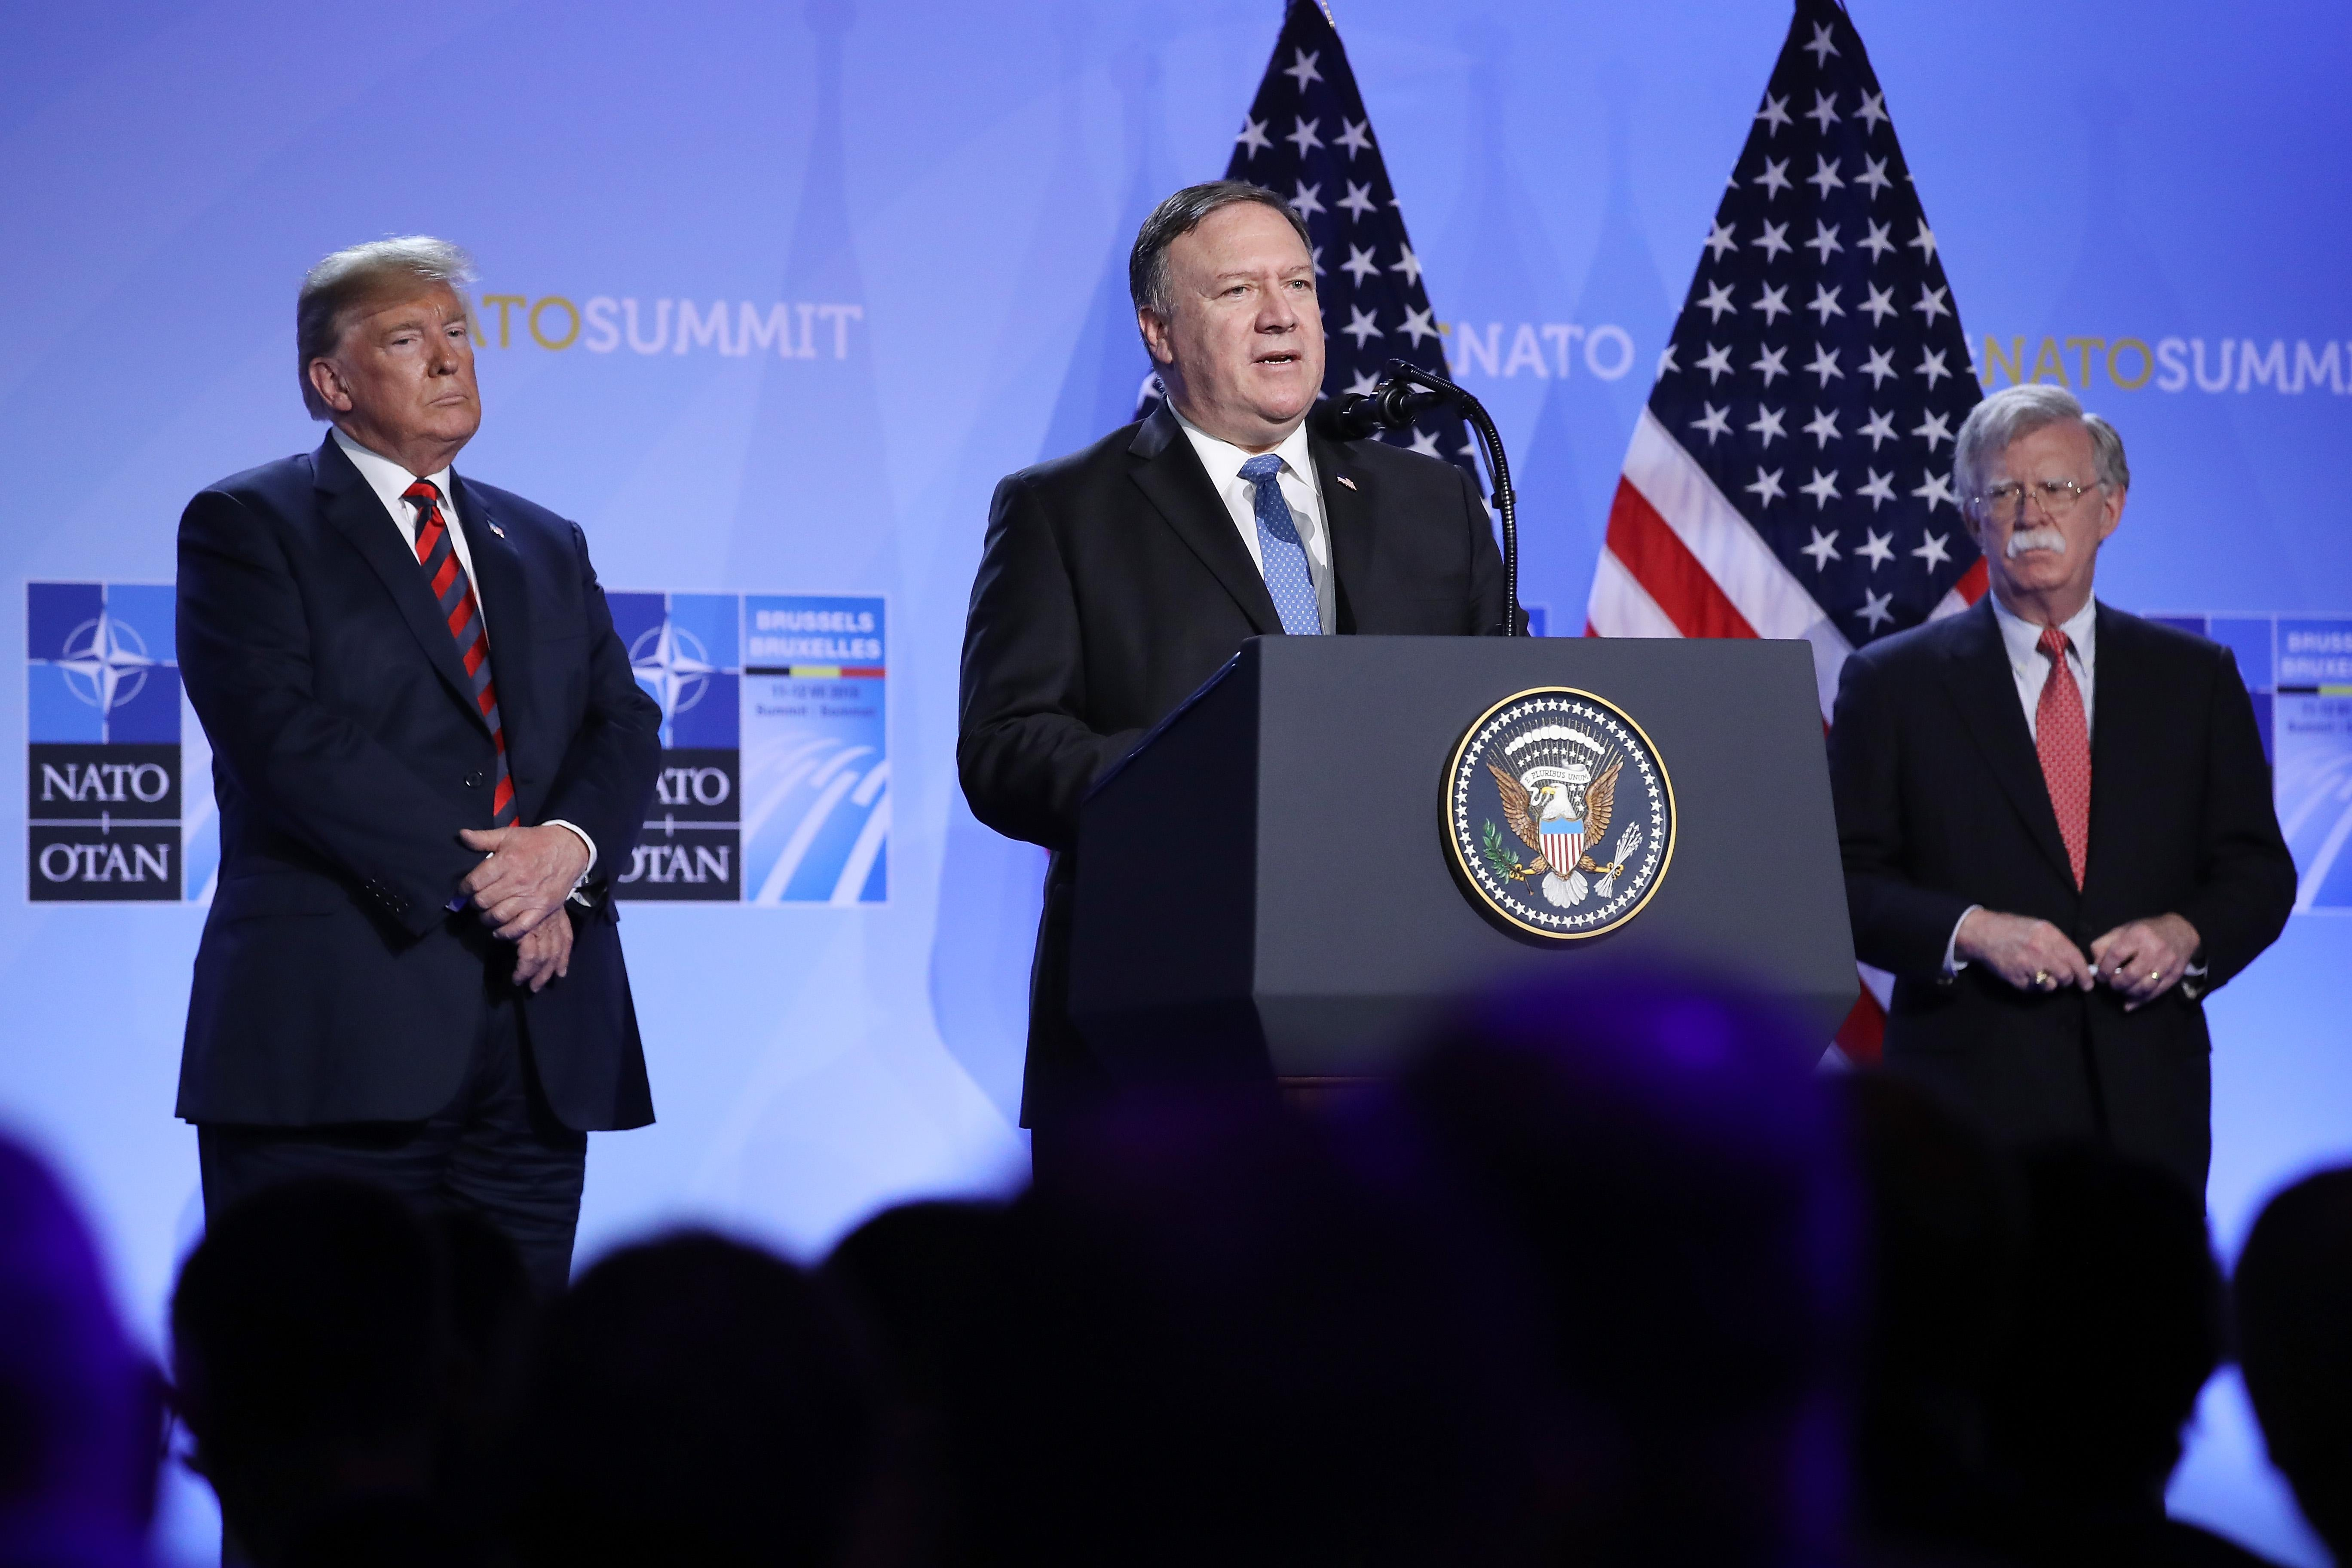 U.S. President Donald Trump (L) and National Security Advisor John Bolton (R) look on as U.S. Secretary of State Mike Pompeo speaks briefly to the media at a press conference on the second day of the 2018 NATO Summit on July 12, 2018 in Brussels, Belgium.